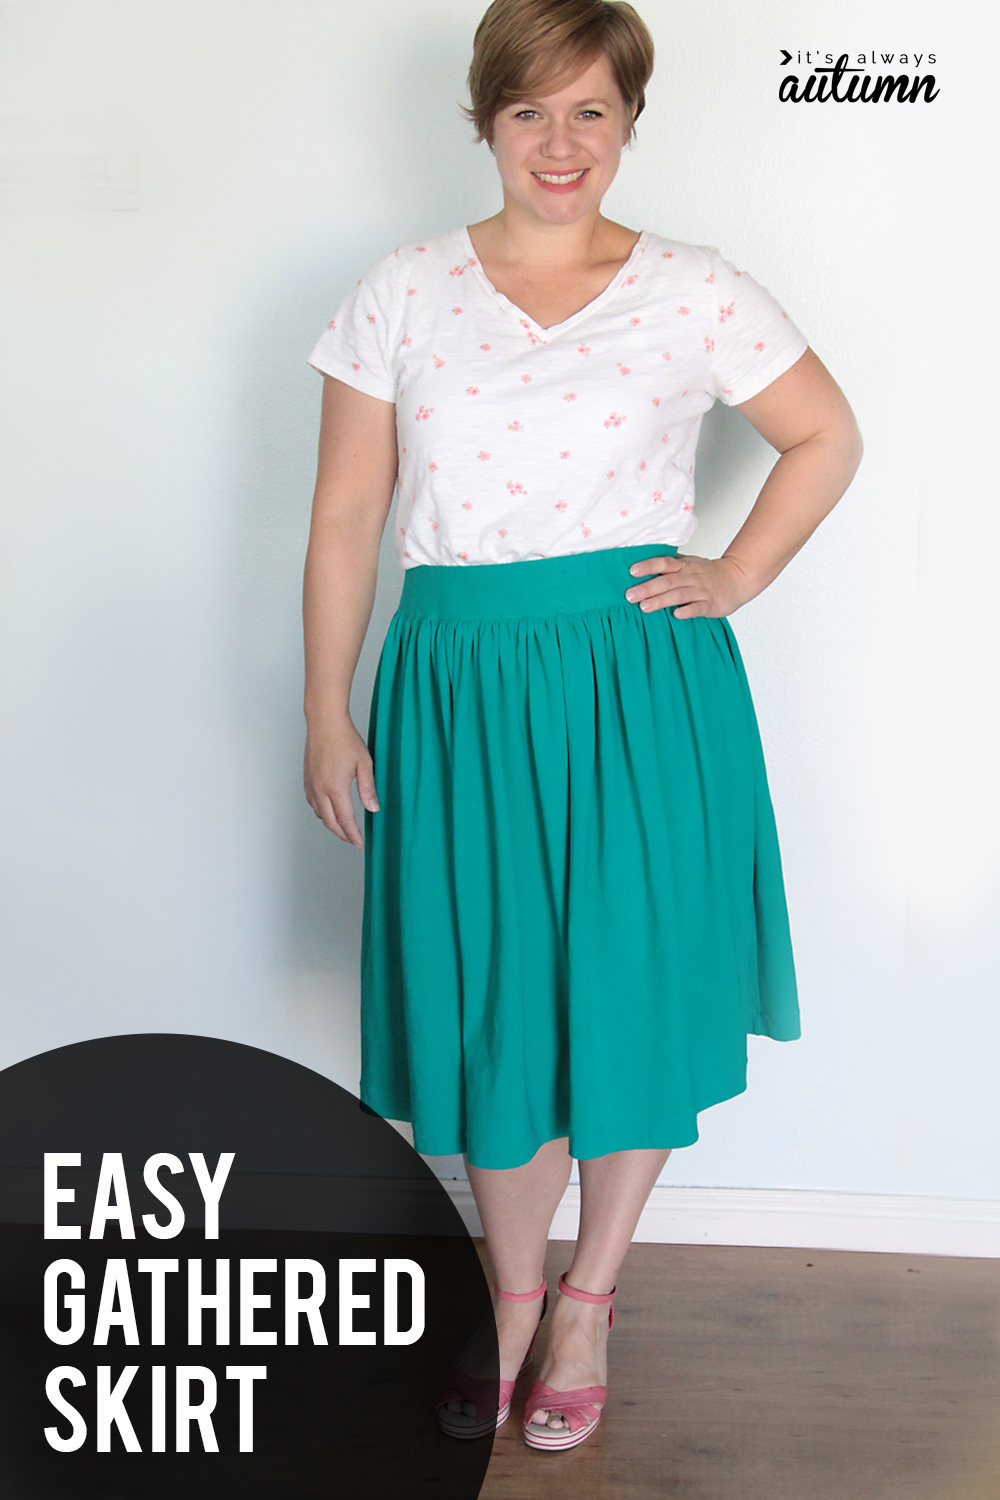 How to make a DIY gathered skirt! Easy gathered skirt tutorial with a flat elastic waistband.